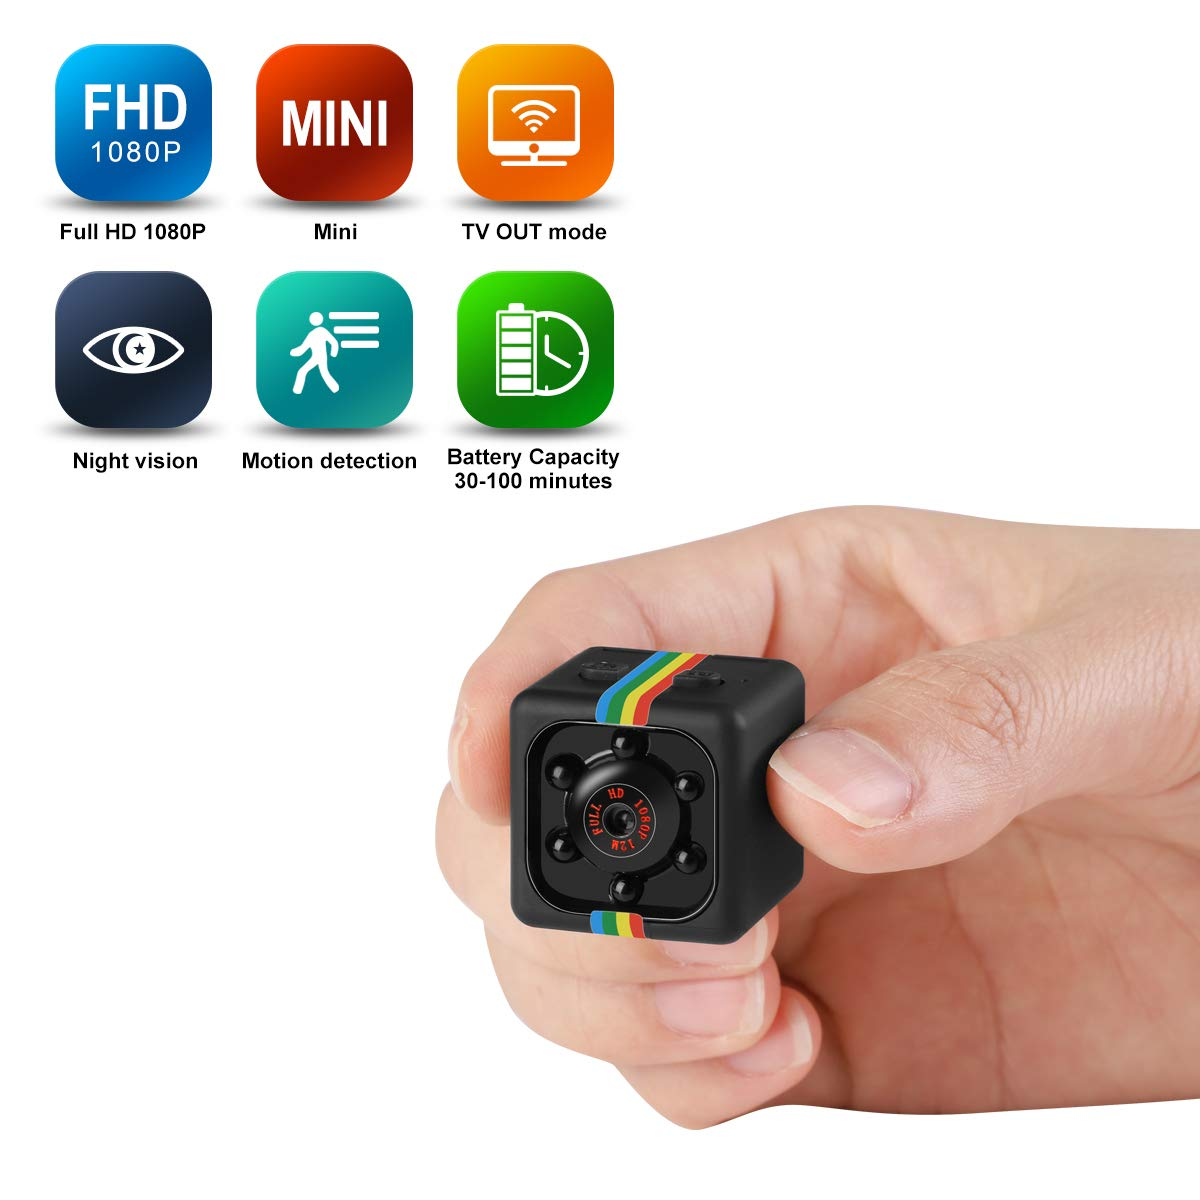 1080P Mini Camera HD Camcorder Nanny Web Cam Sports Mini DV Video Recorder With Night Vision And Motion Detection